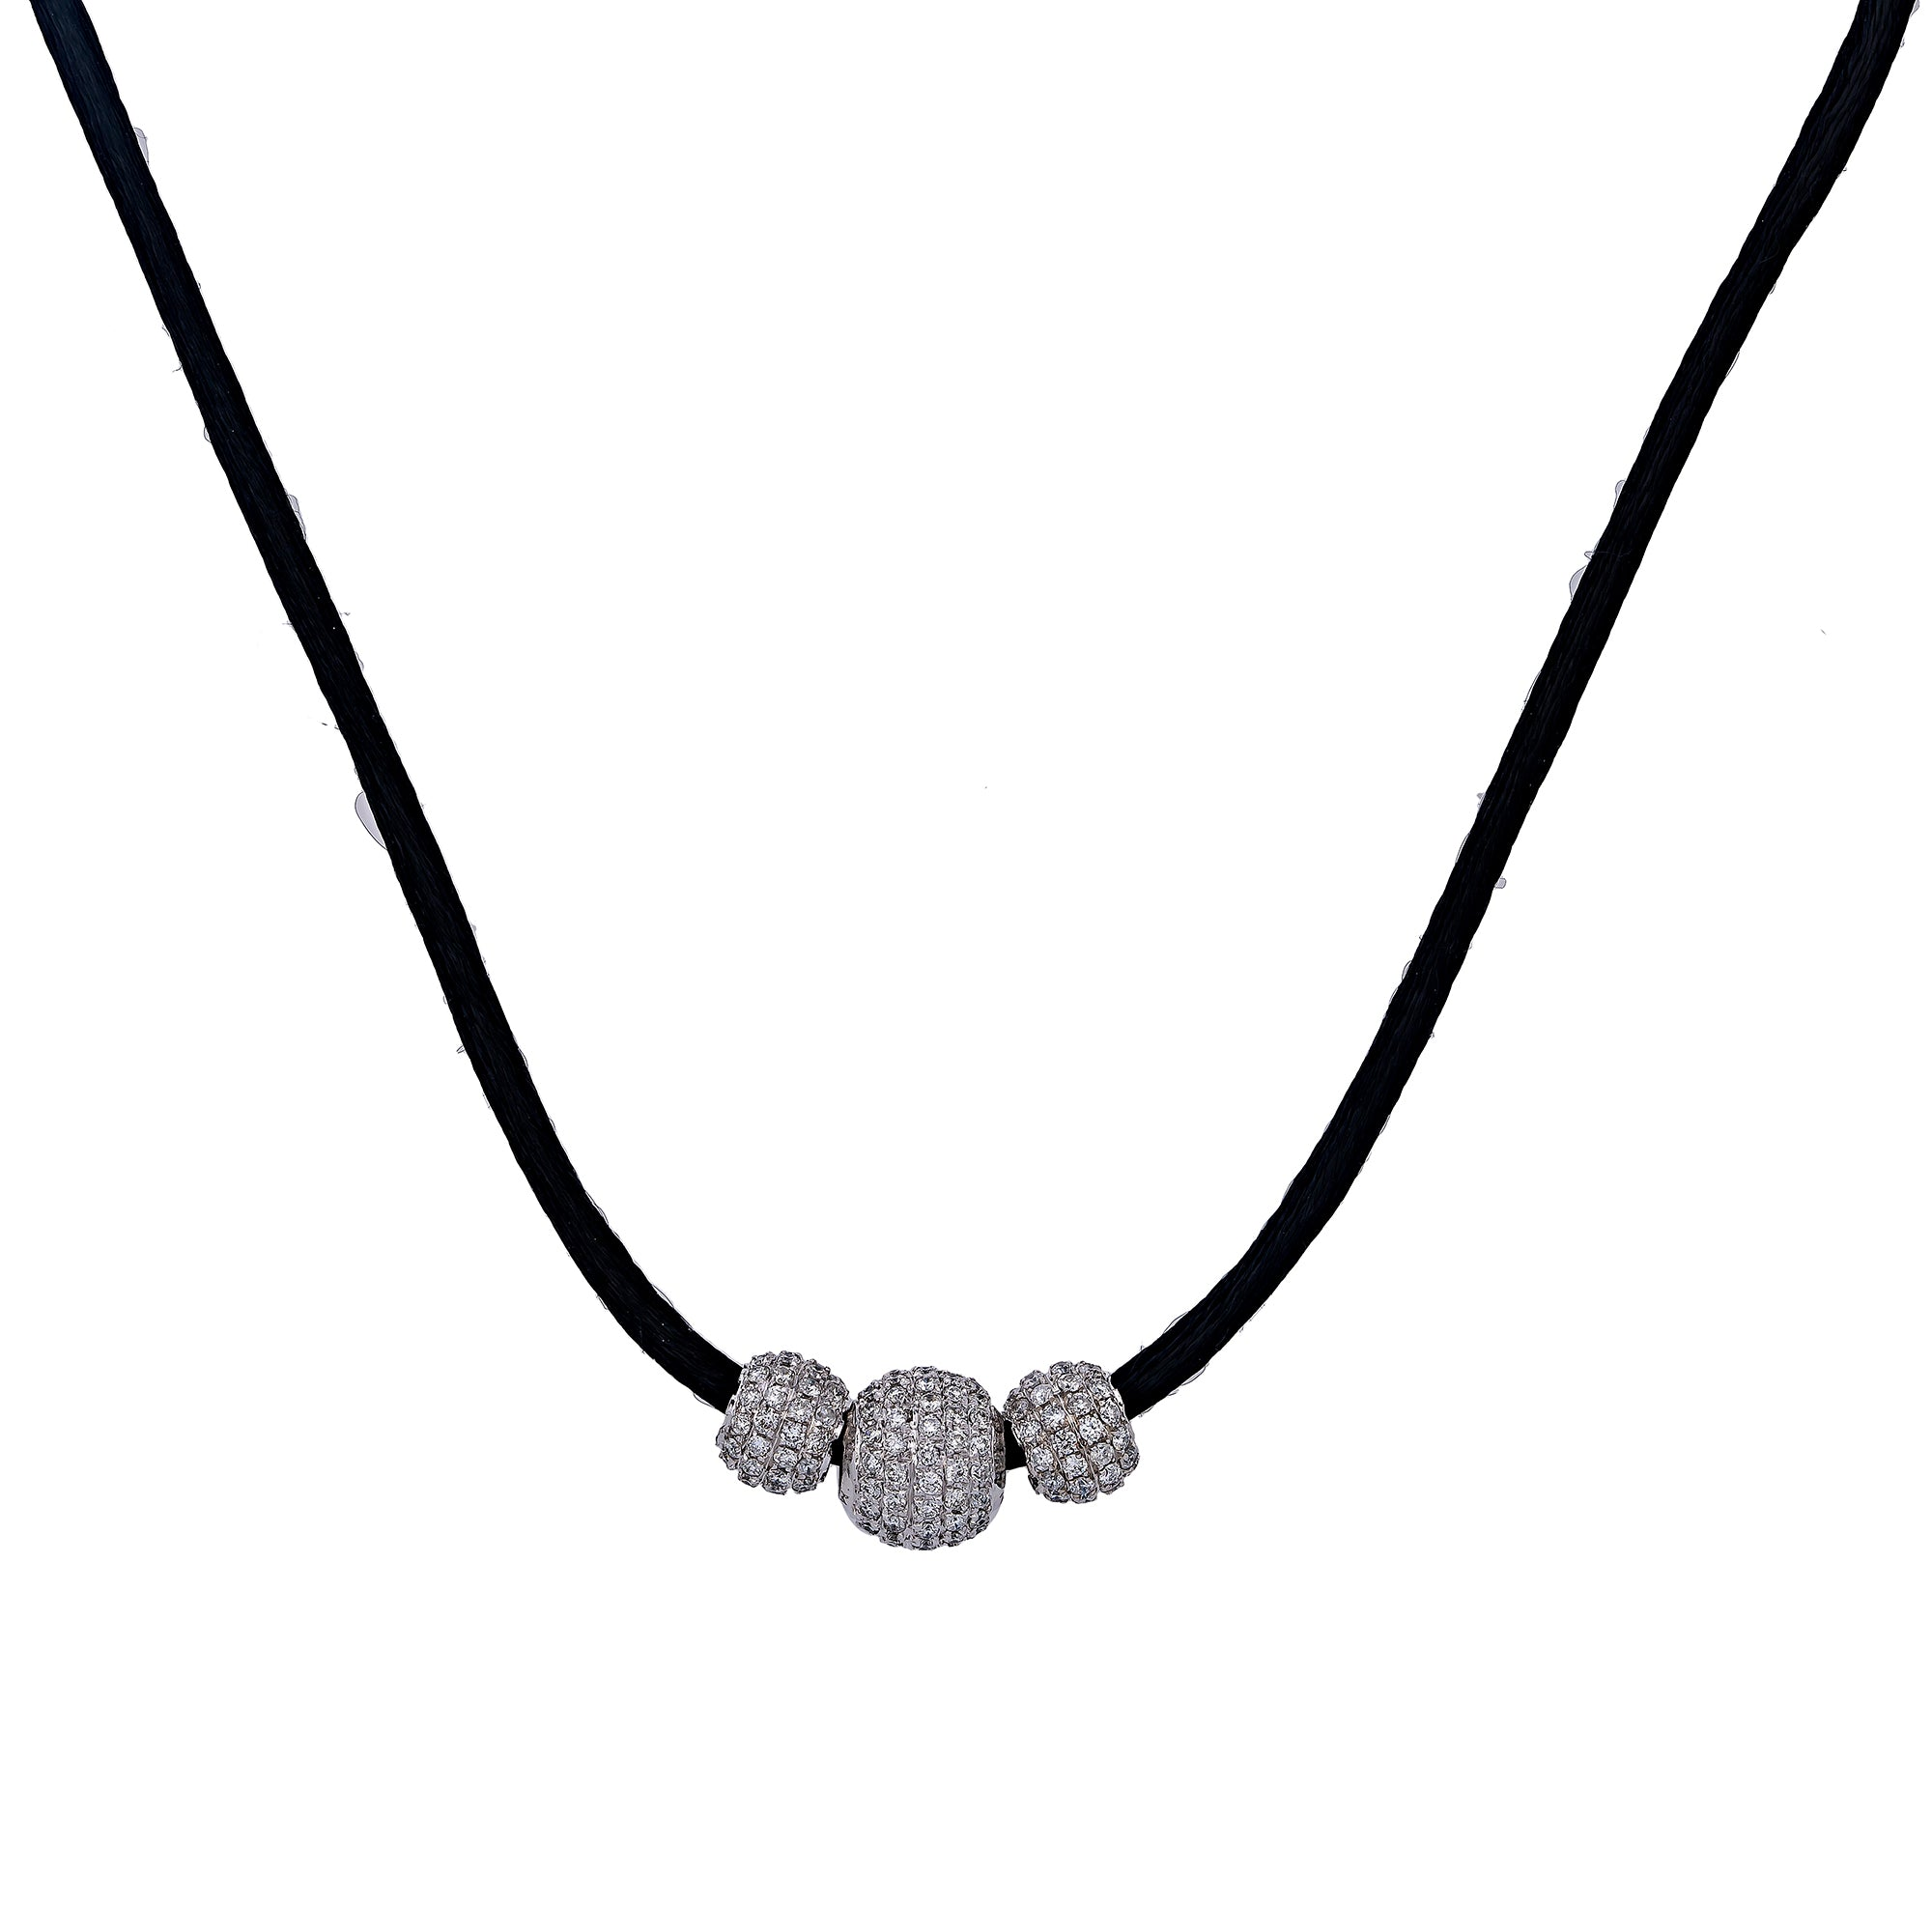 10K White Gold Women's Necklace, 17